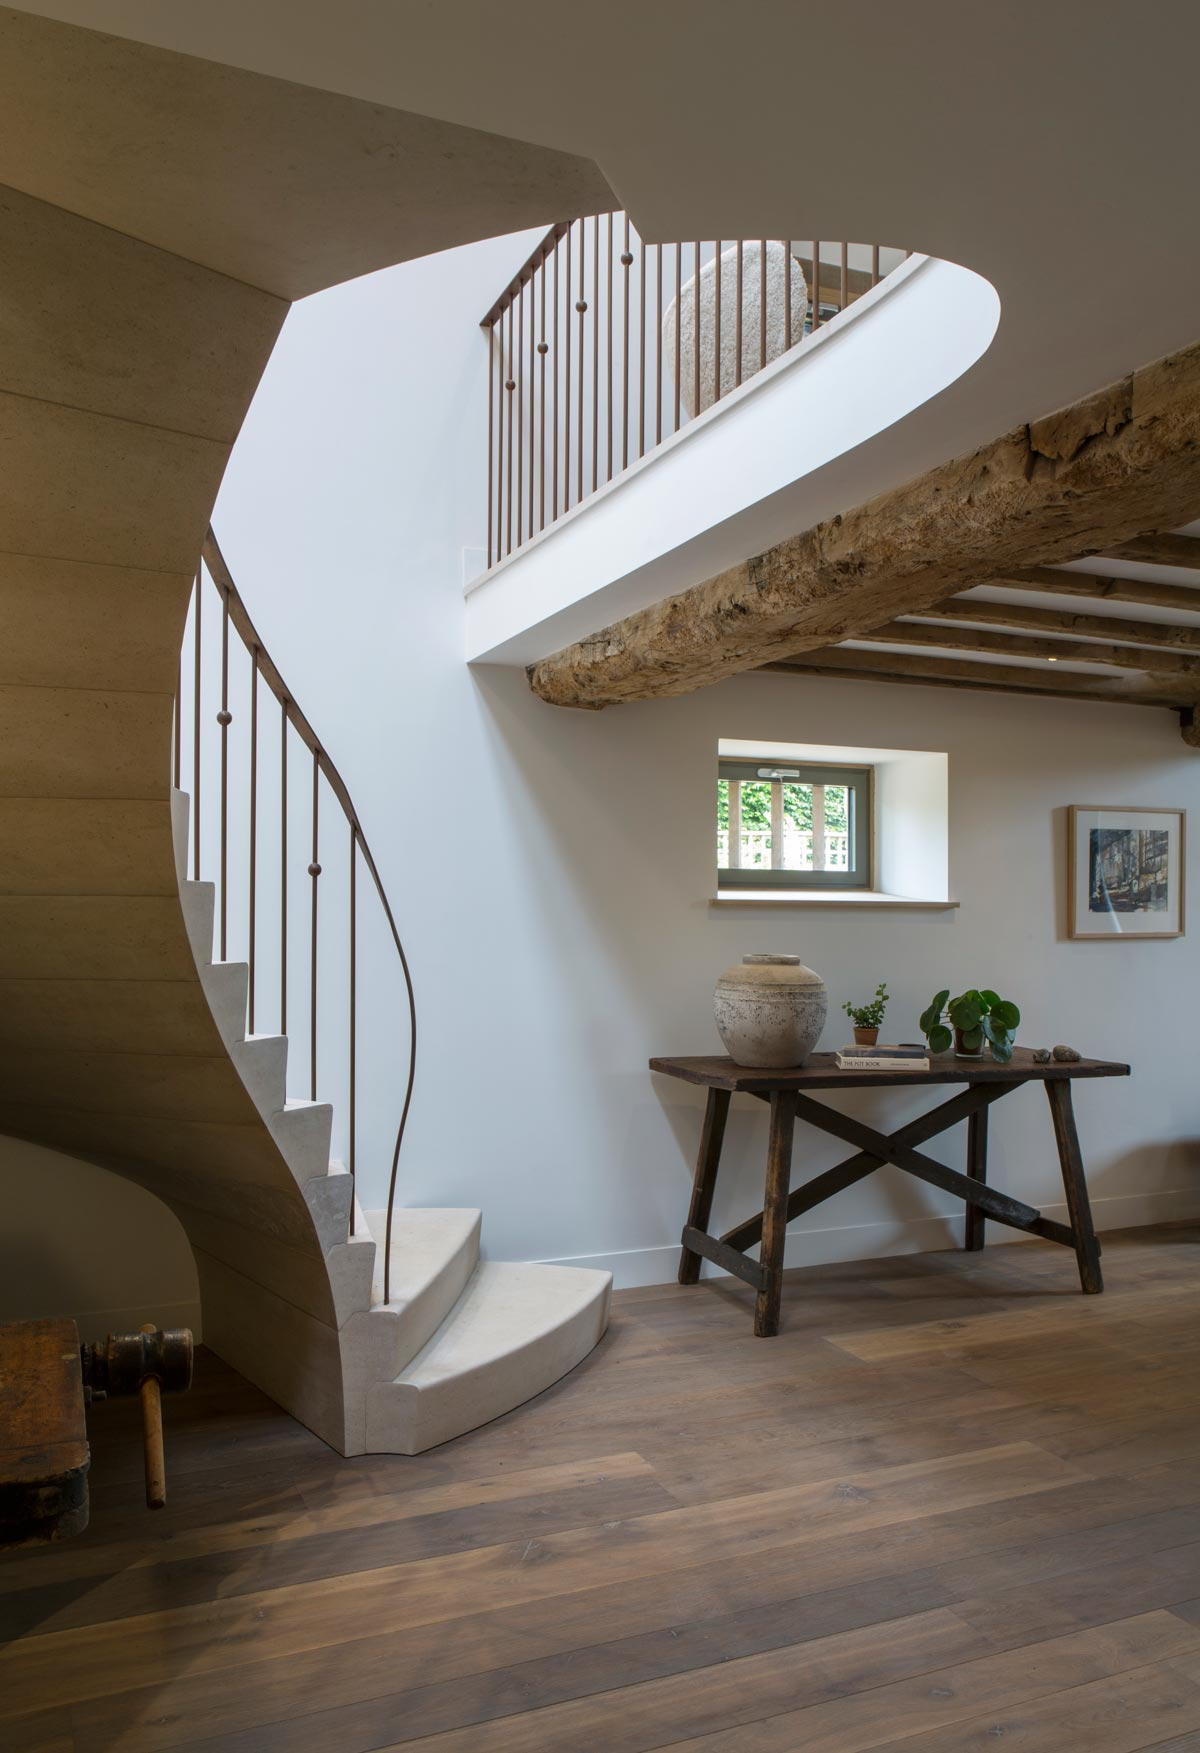 sculptural-curved-limestone-staircase-5-oxfordshire-rogue-designs-ian-knapper.jpg